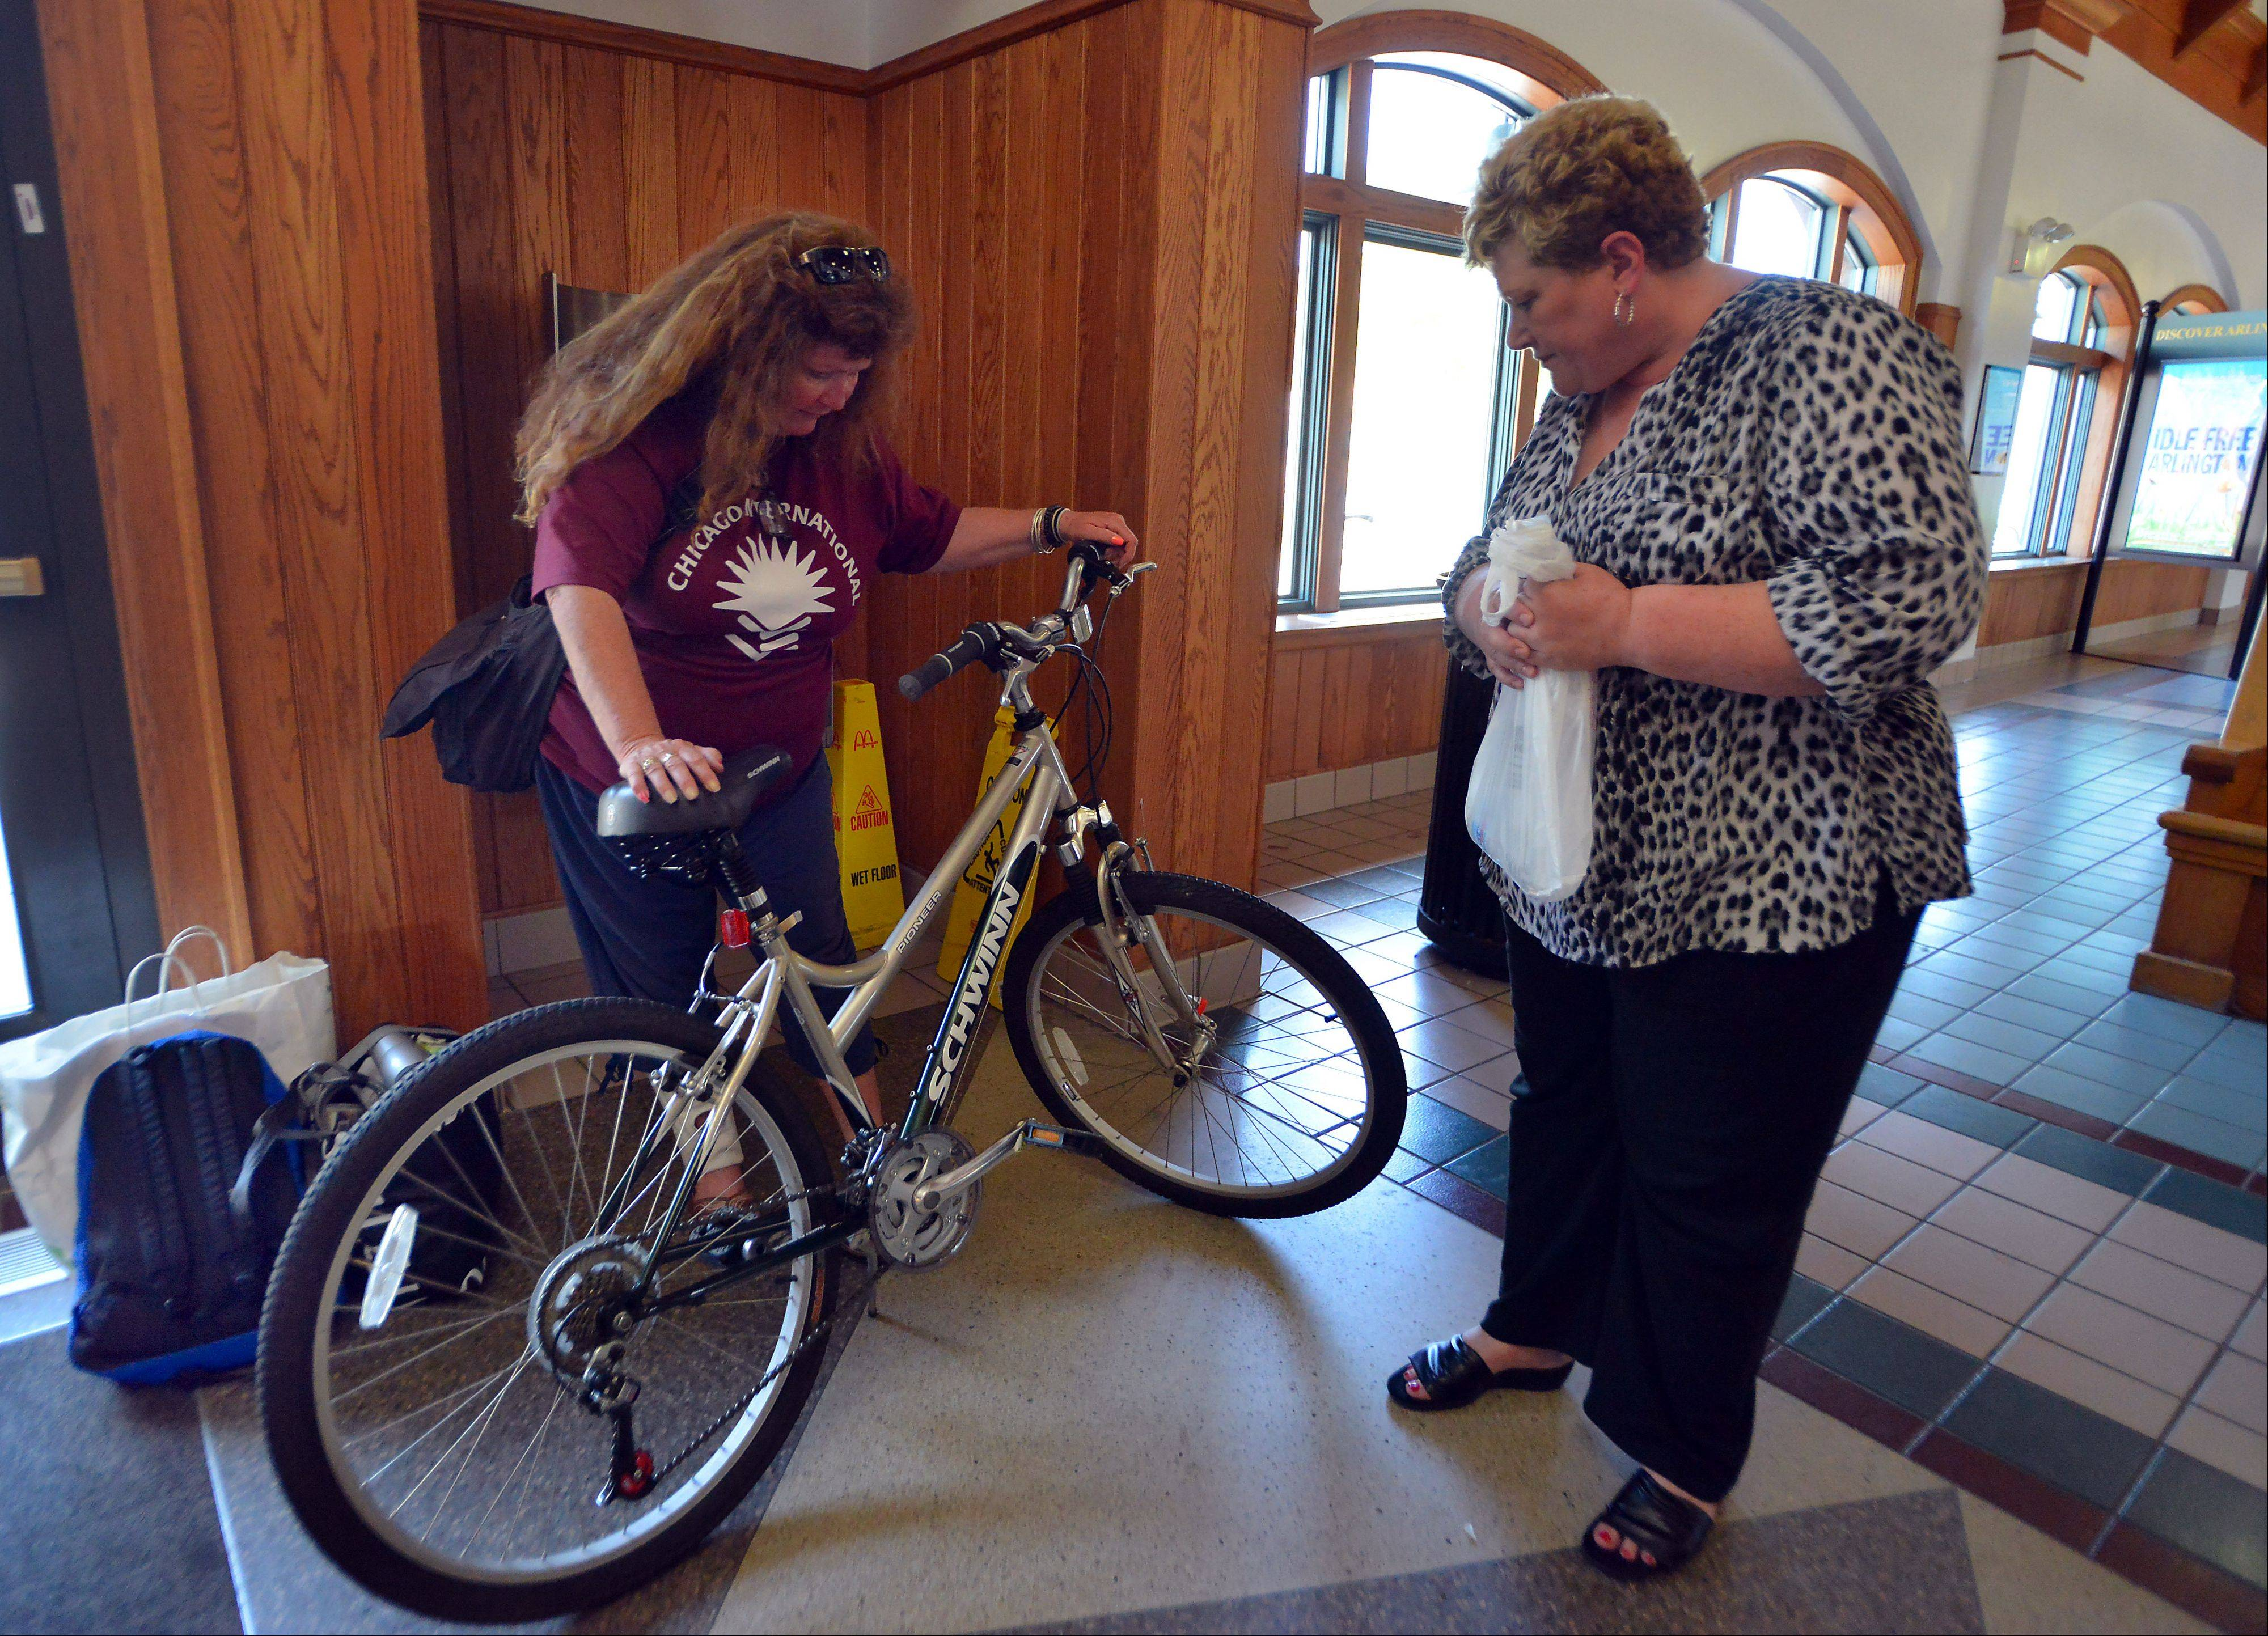 Kathy Kelly of Hoffman Estates, right, and Rosan Acosta look over the 1-year-old Schwinn bike that Kelly donated to Acosta after Acosta lost her bike and clothing in a arson fire.